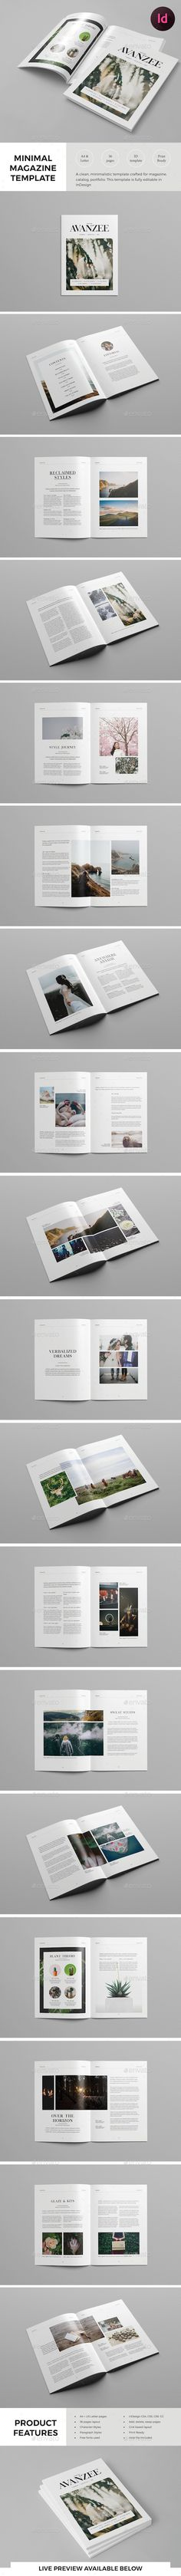 Minimal Magazine Template — InDesign INDD #modern #typography • Available here ➝ https://graphicriver.net/item/minimal-magazine-template/20792599?ref=pxcr